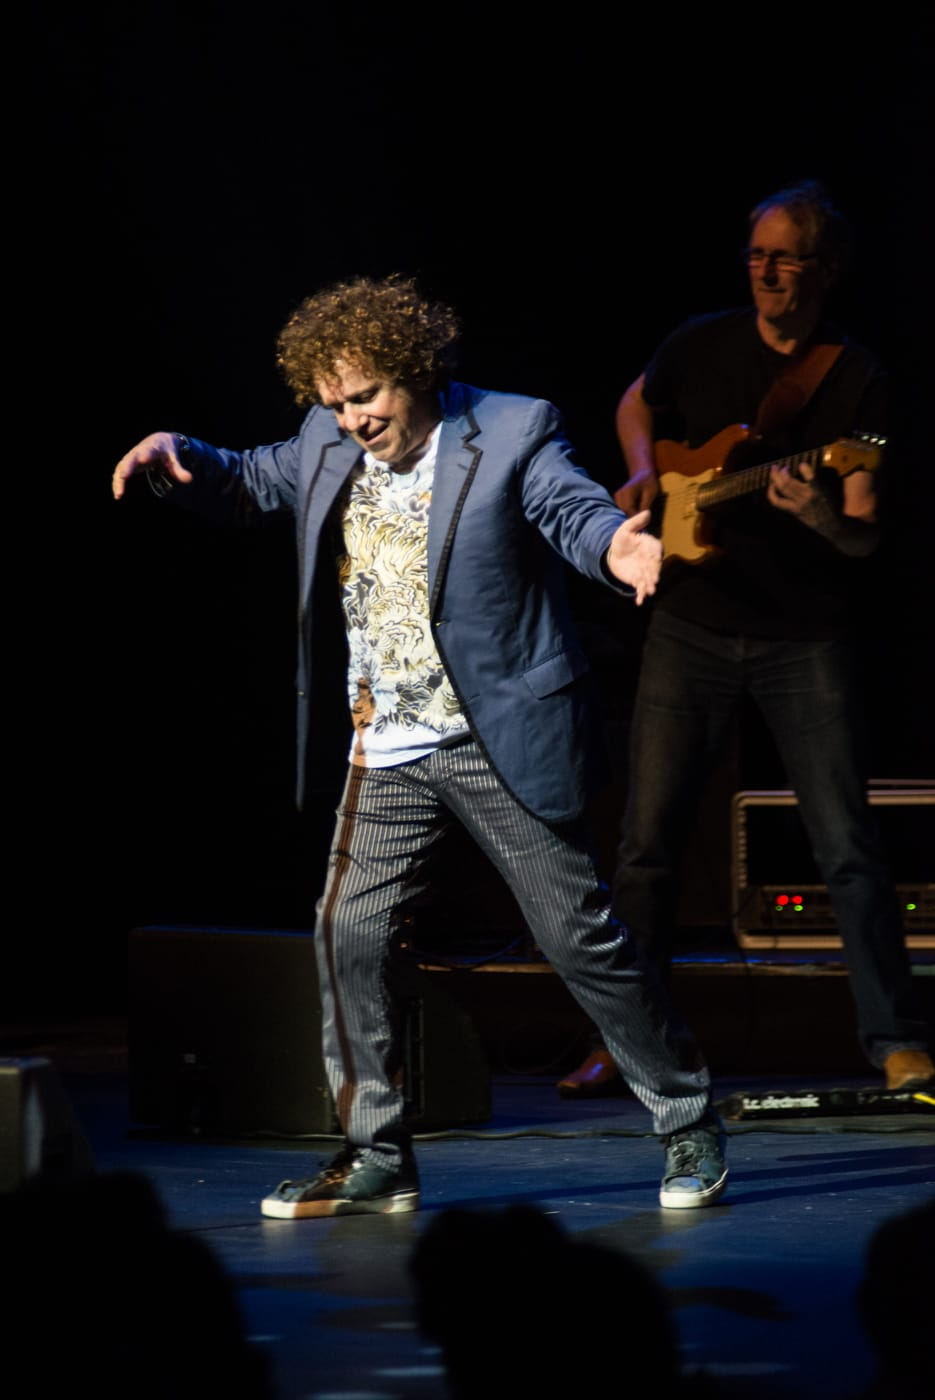 Leo Sayer at Bord Gais Energy Theatre by Sean Smyth (16-10-15) (37 of 129)